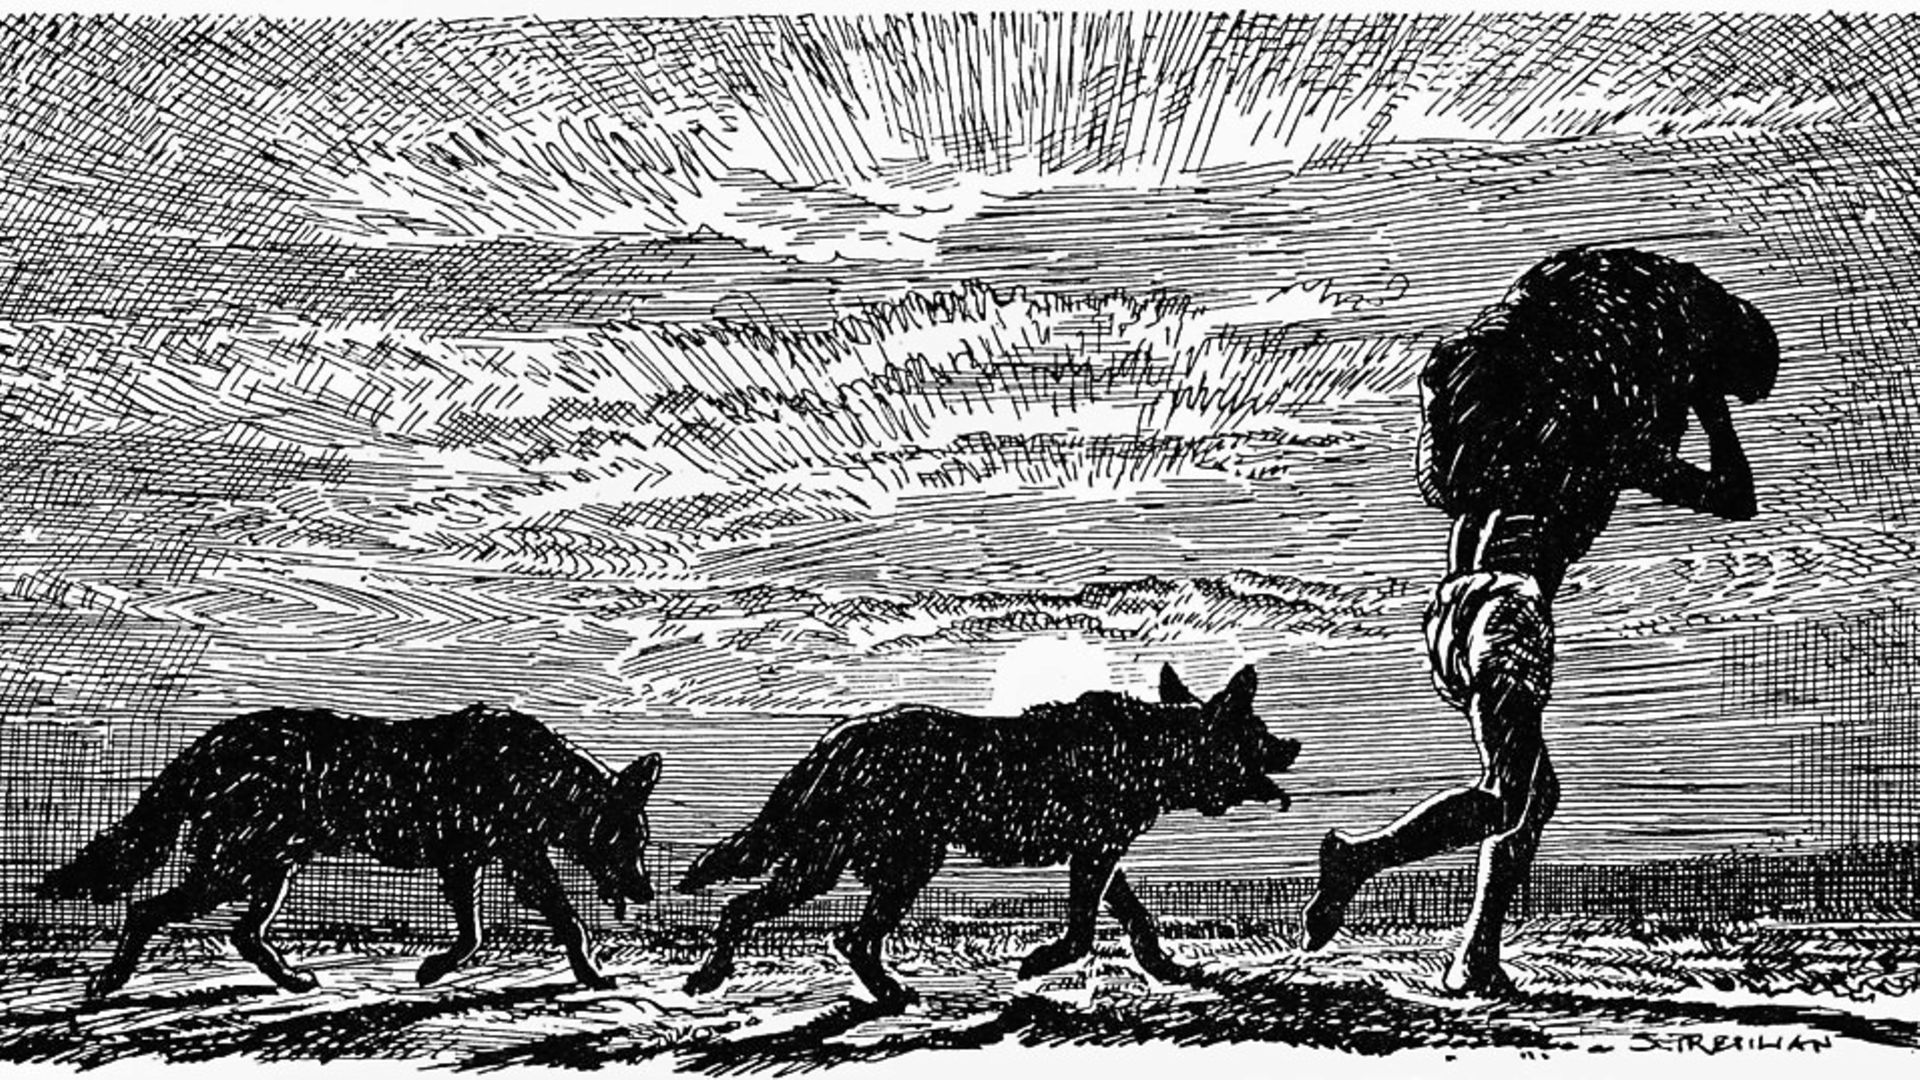 'Mowgli, with two wolves at his heels and a bundle on his head'. Photo by Culture Club/Getty Images. - Credit: Getty Images